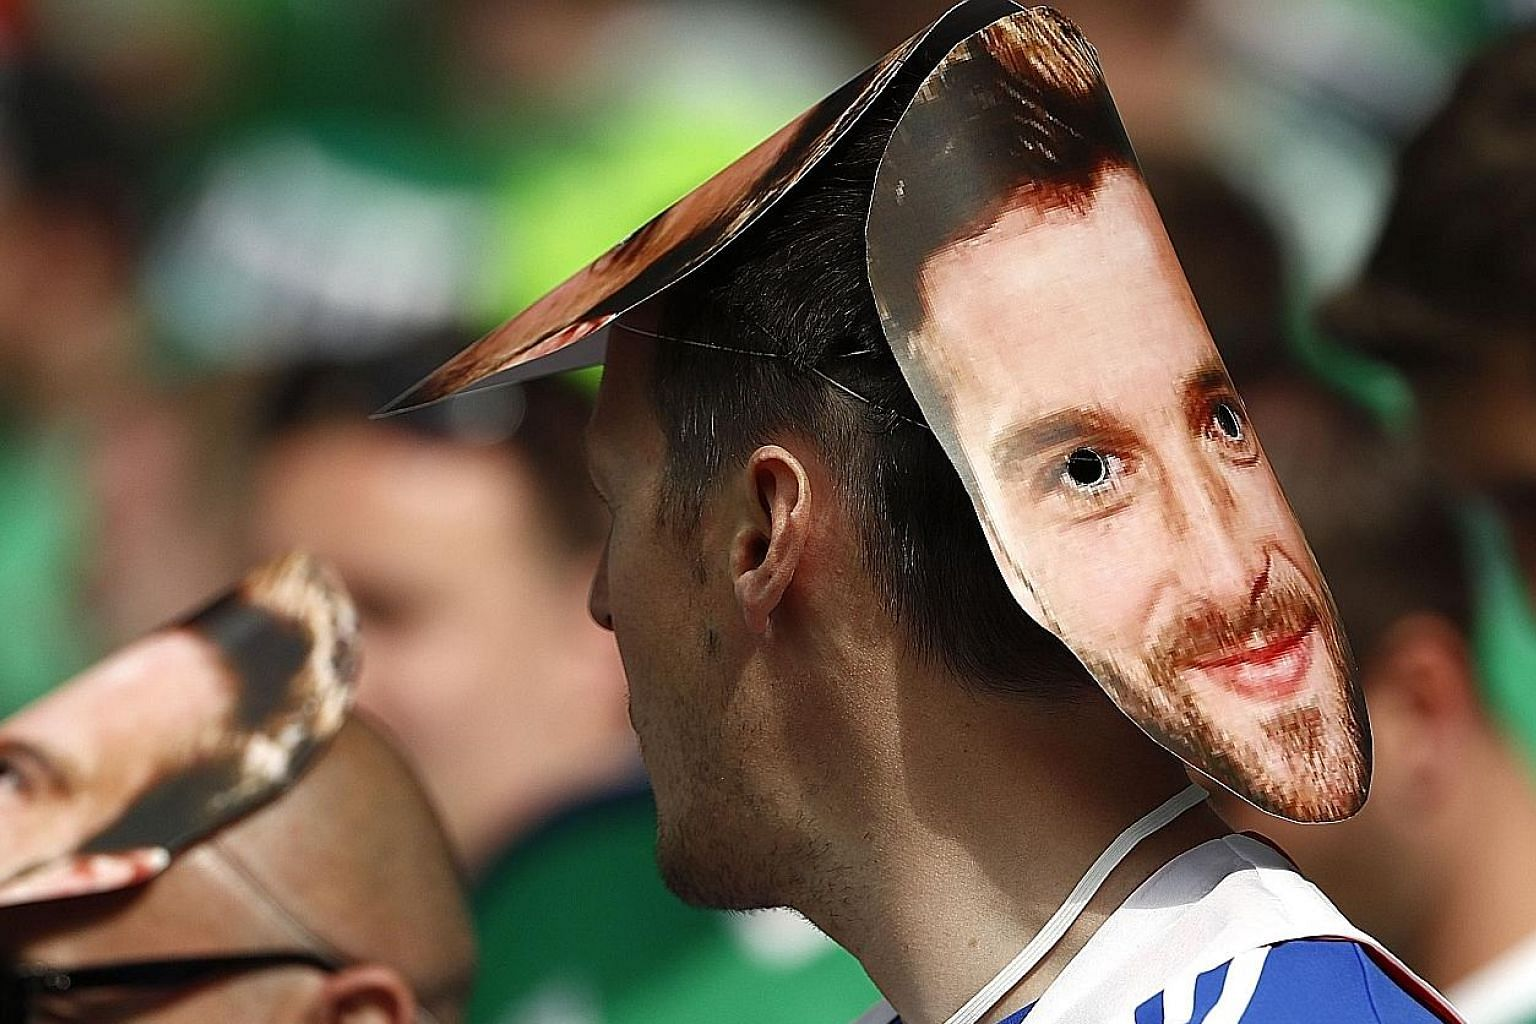 A fan with a mask of Northern Ireland forward Will Grigg waits patiently for the start of the Euro 2016 Group C encounter between Ukraine and Northern Ireland on June 16. Grigg, who has not played so far in the tournament, is the subject of a popular